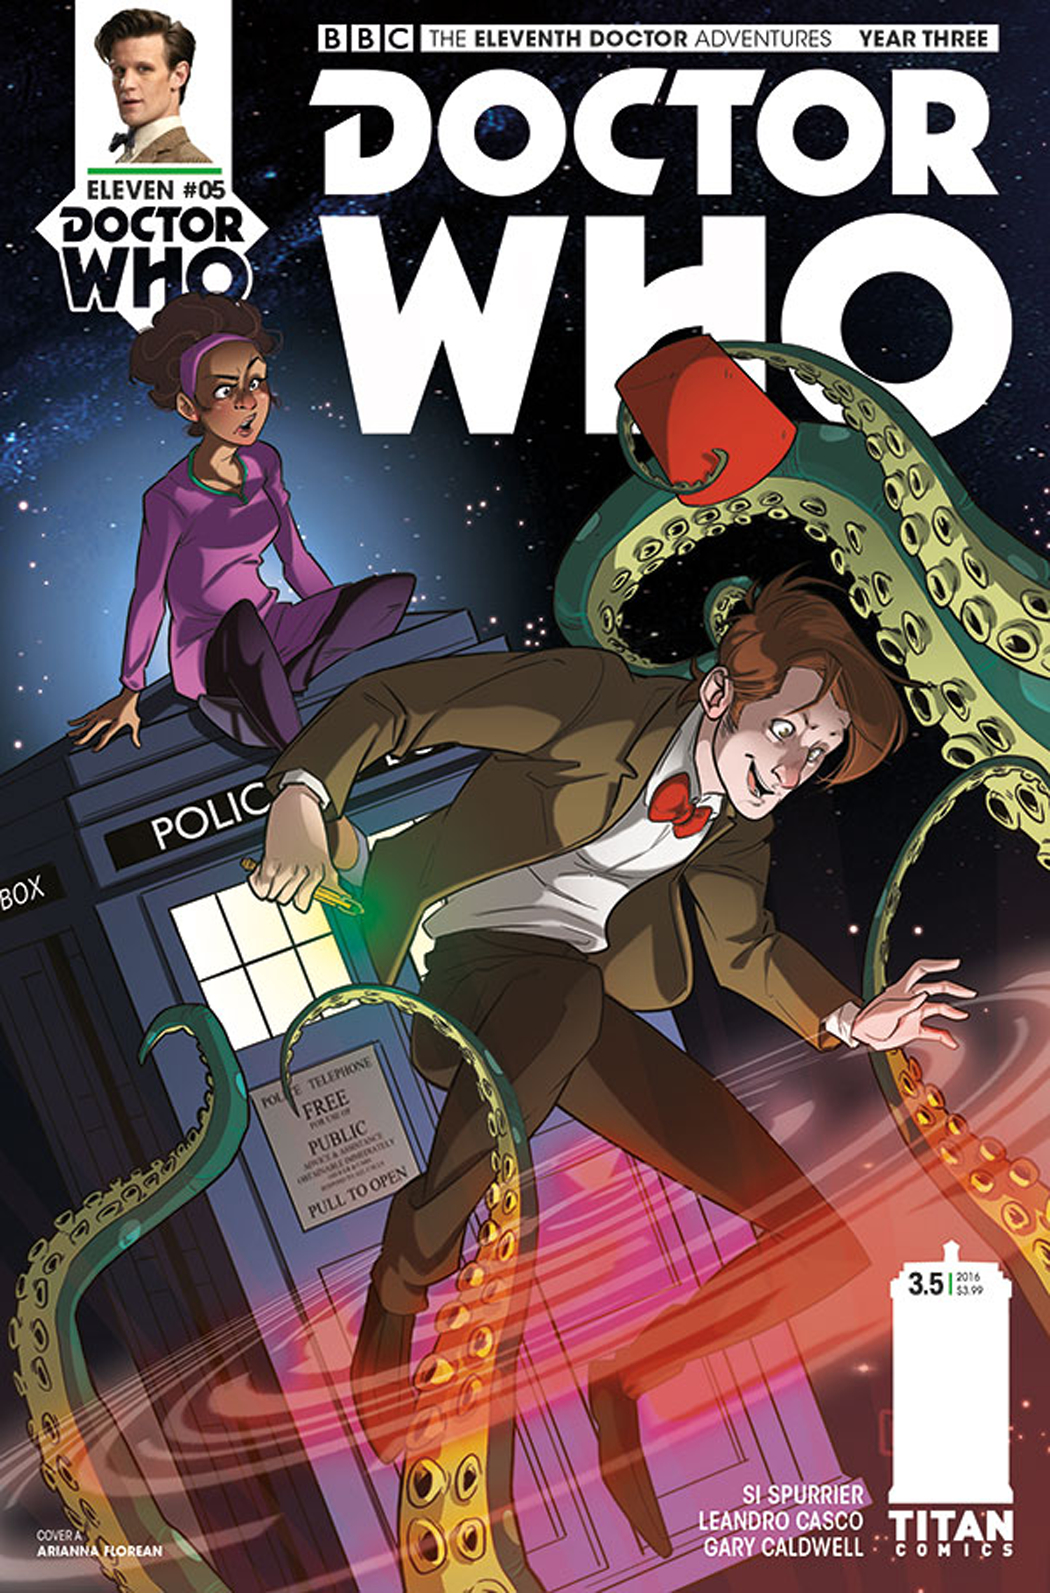 DOCTOR WHO 11TH YEAR THREE #5 CVR A FLOREAN